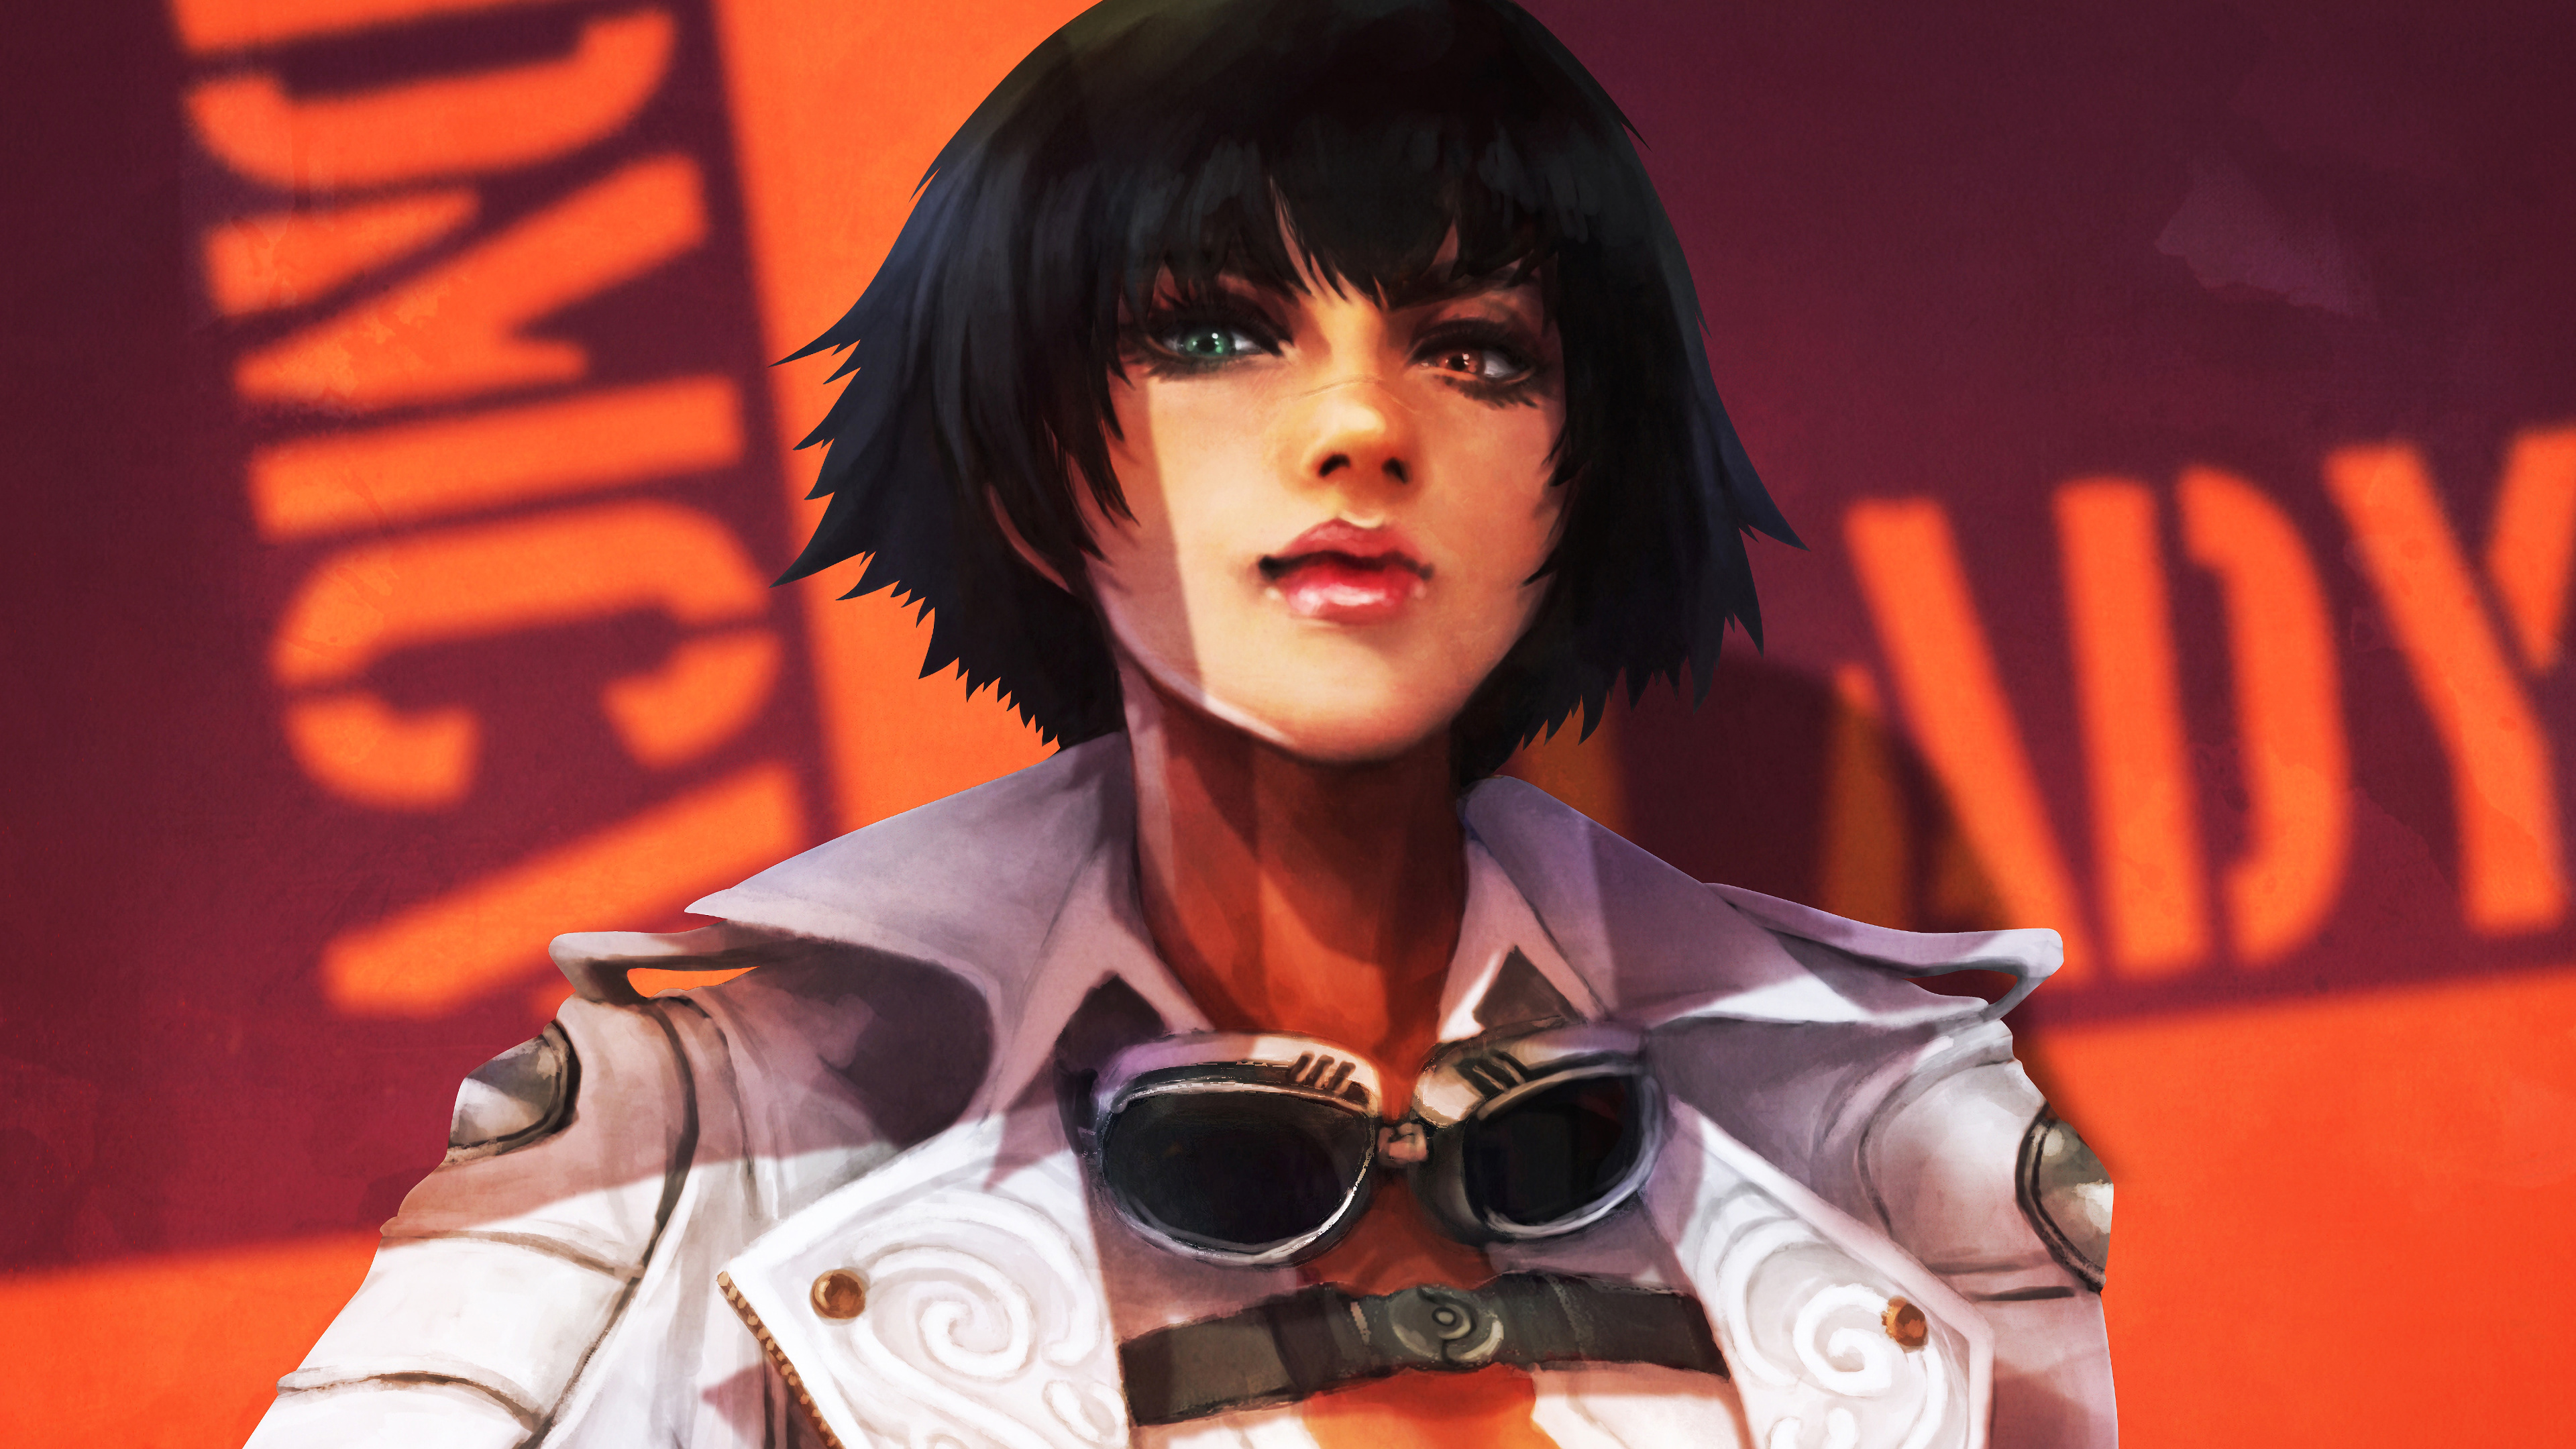 Lady Devil May Cry 5 4k Wallpaper 108